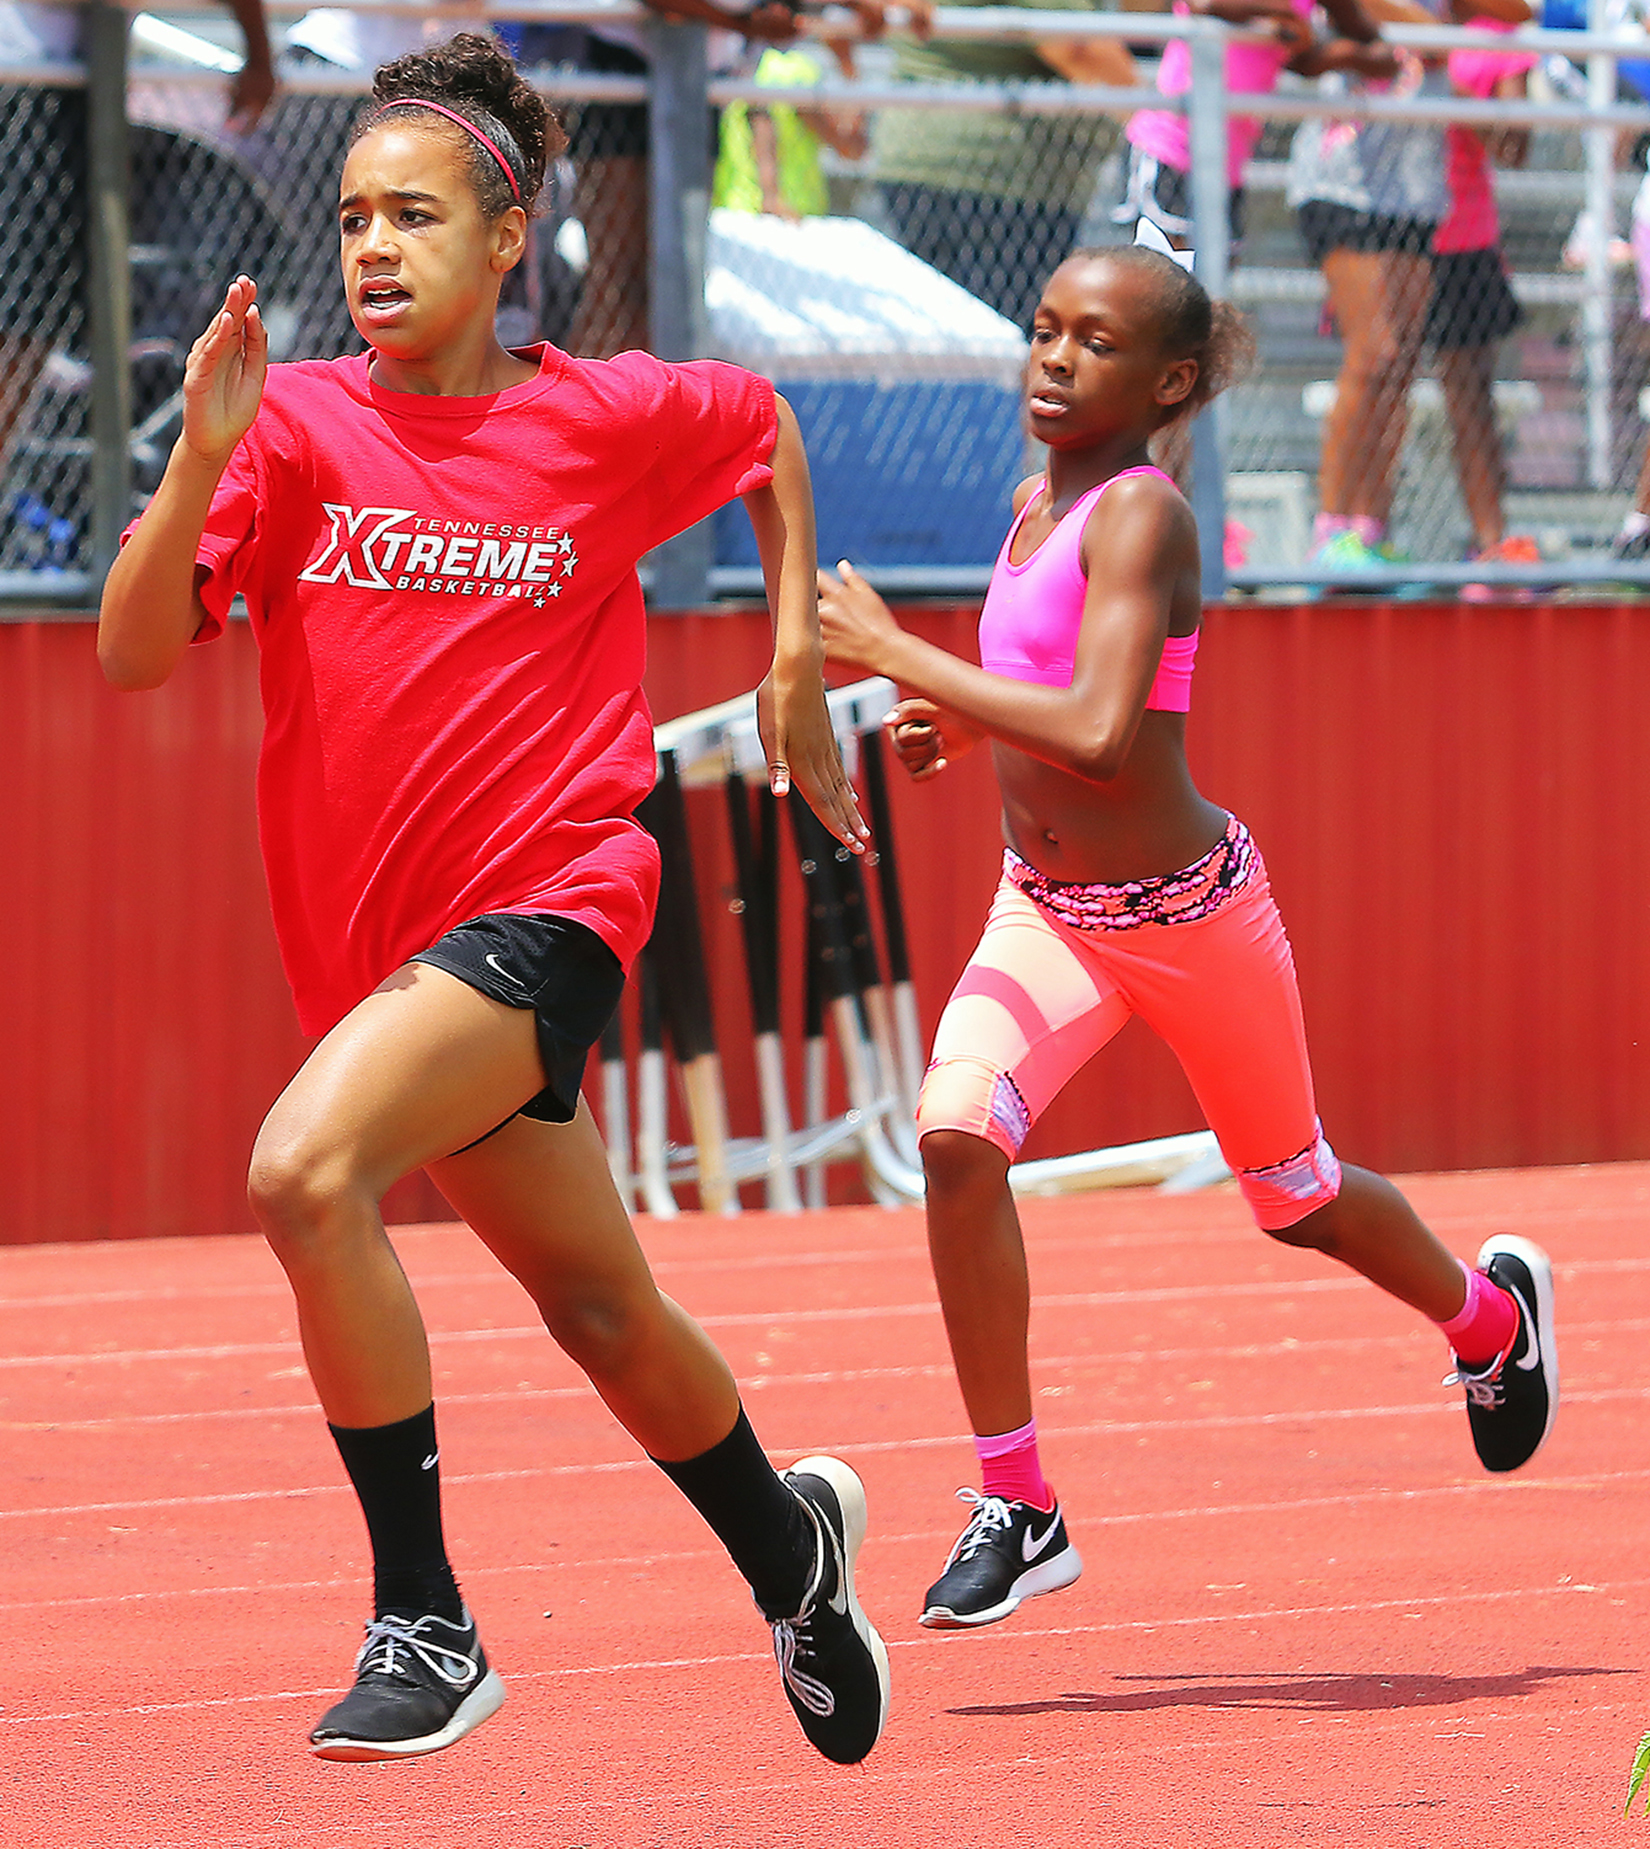 USA Track and Field Future Stars State Track meet was in Murfreesboro